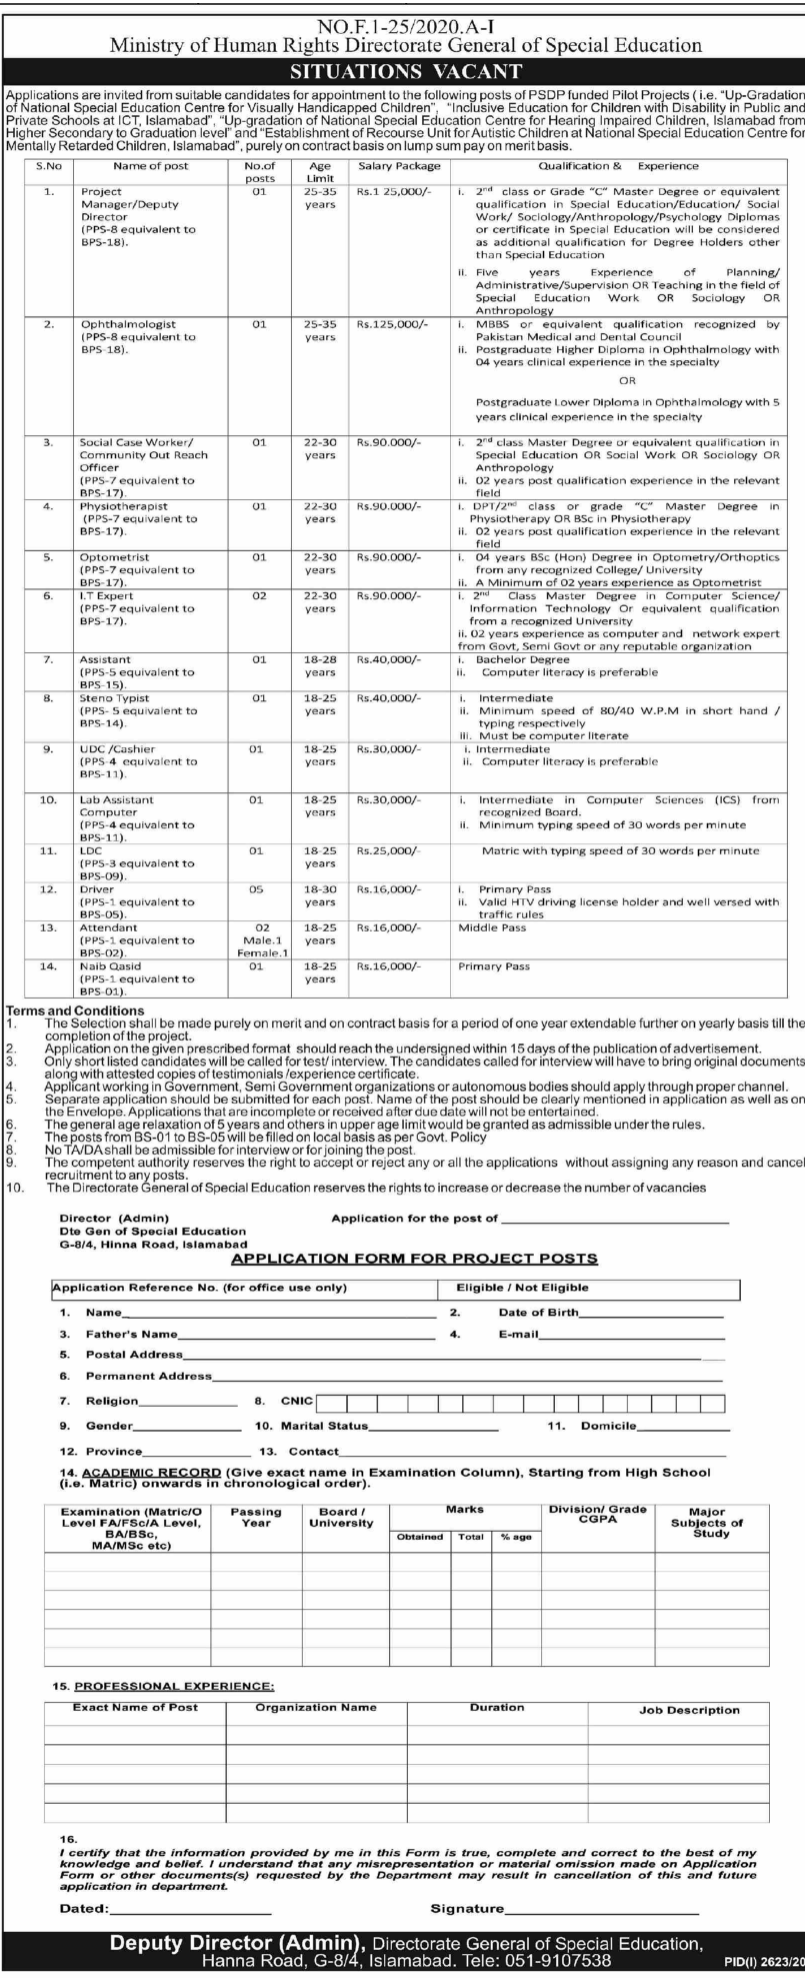 Primary Pass job For Naib Qasid in Ministry of Human Rights Directorate General of Special Education in Islamabad for Pakistan candidates -2020